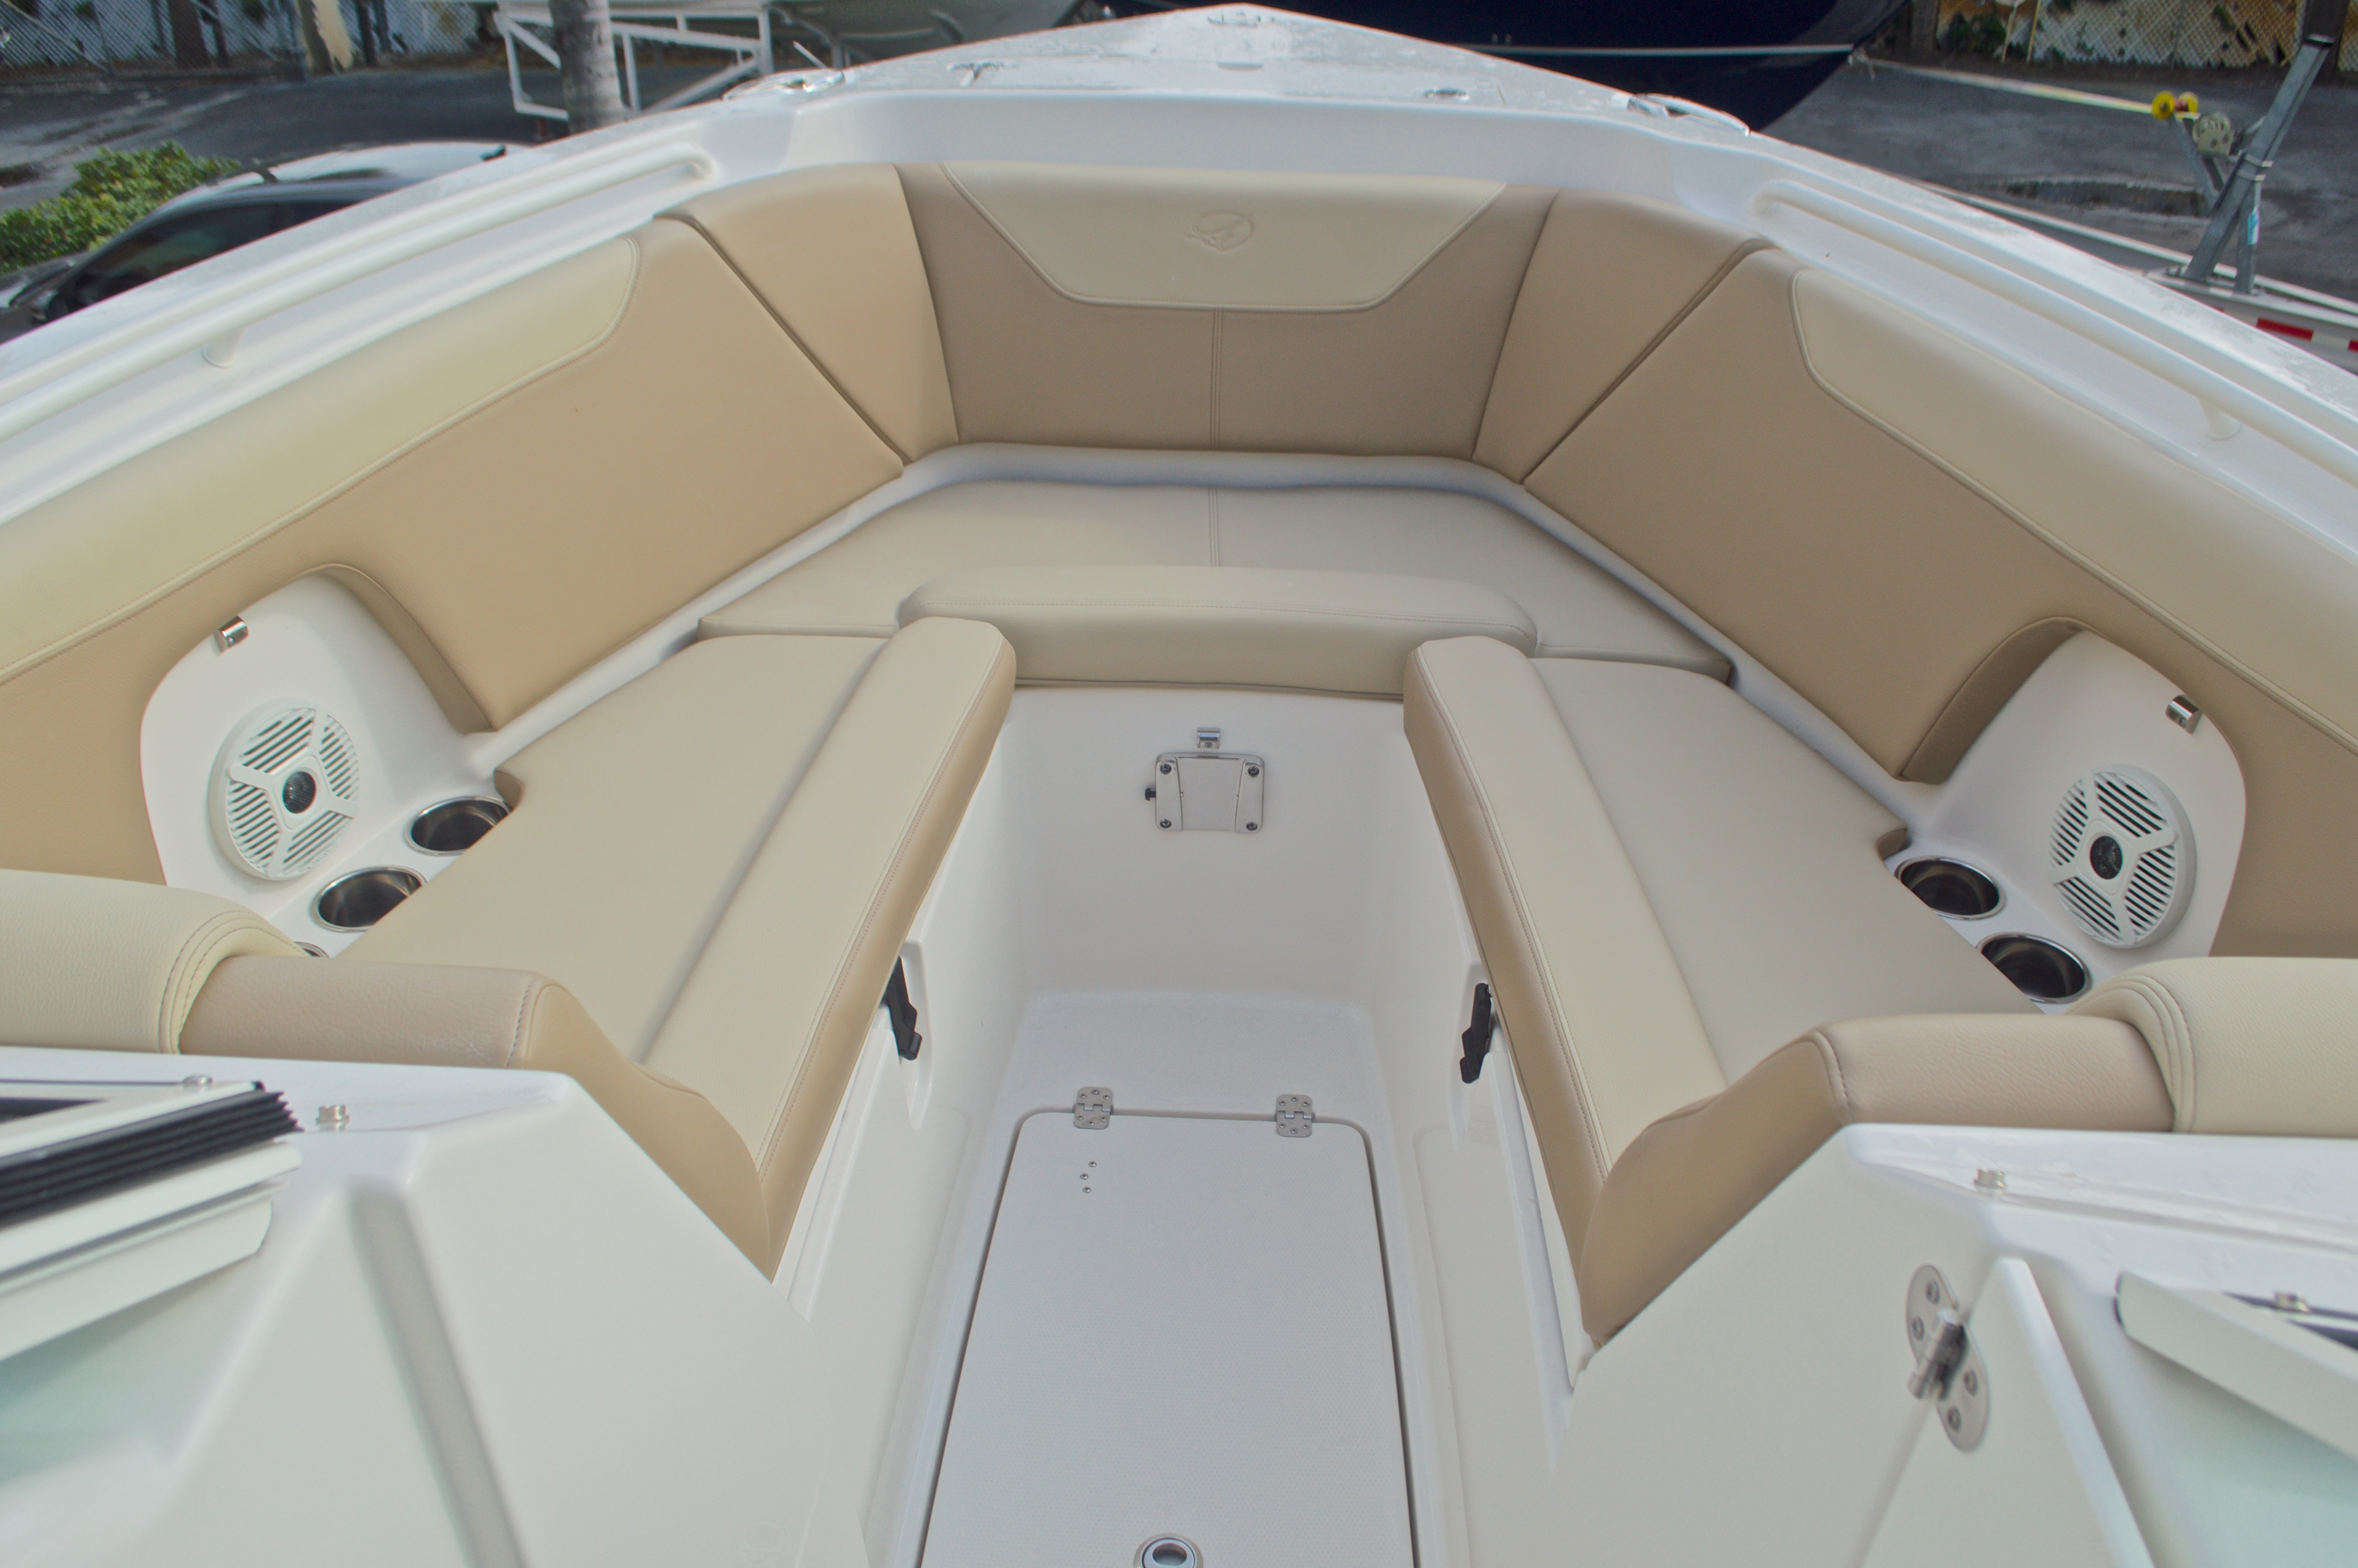 Thumbnail 41 for New 2017 Sailfish 275 Dual Console boat for sale in West Palm Beach, FL